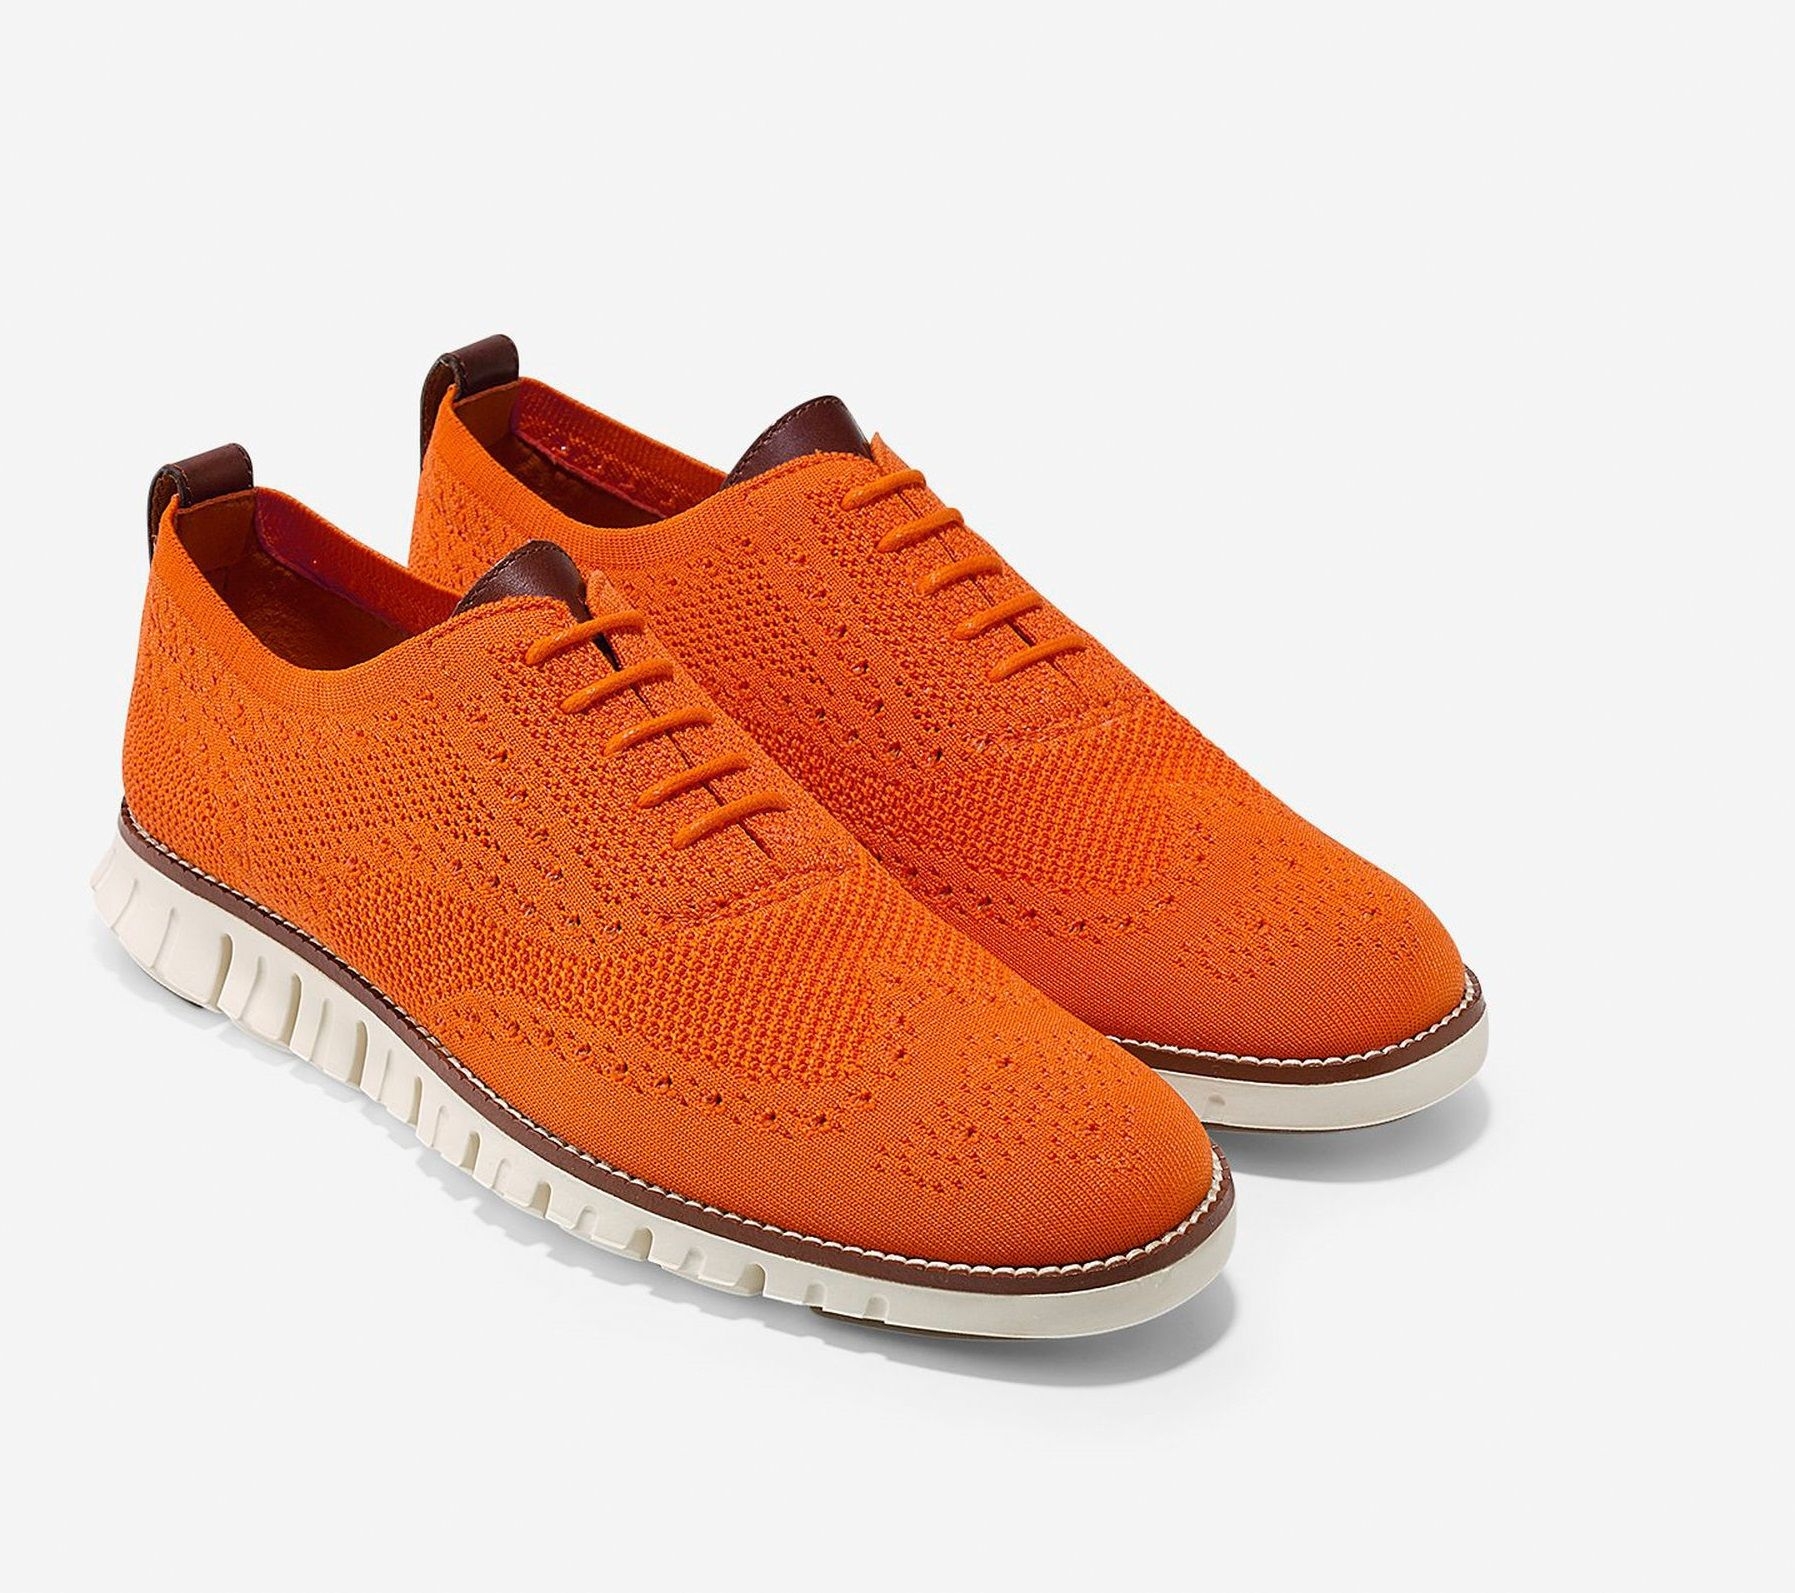 Make a statement with these orange shoes from Cole Haan